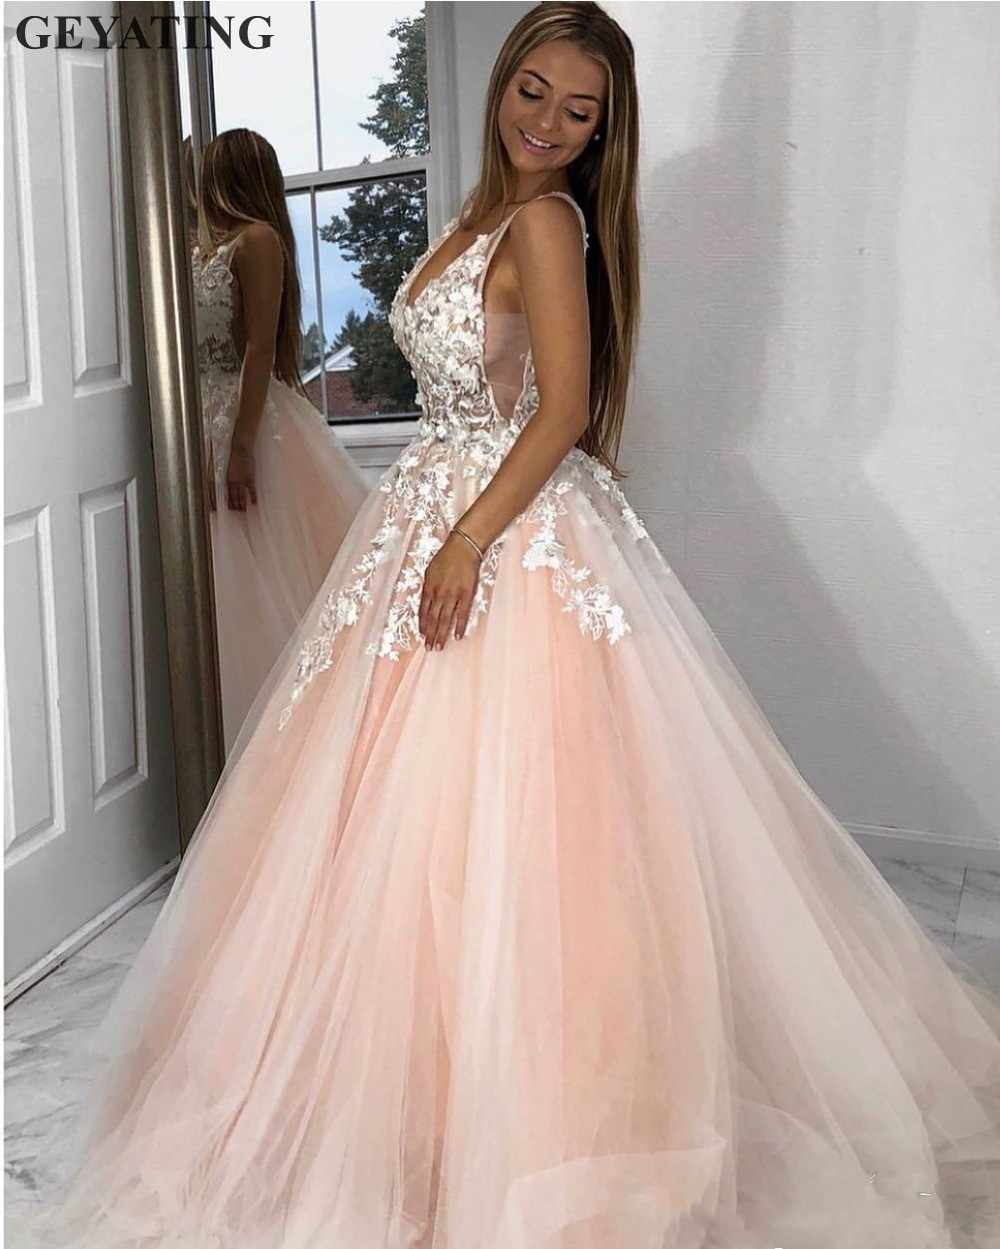 3df76368e65c2 Sexy V-Neck Backless Blush Pink Prom Dresses 2019 Mint Green Tulle Ball  Gown Vestidos de gala Elegant Long Evening Formal Dress